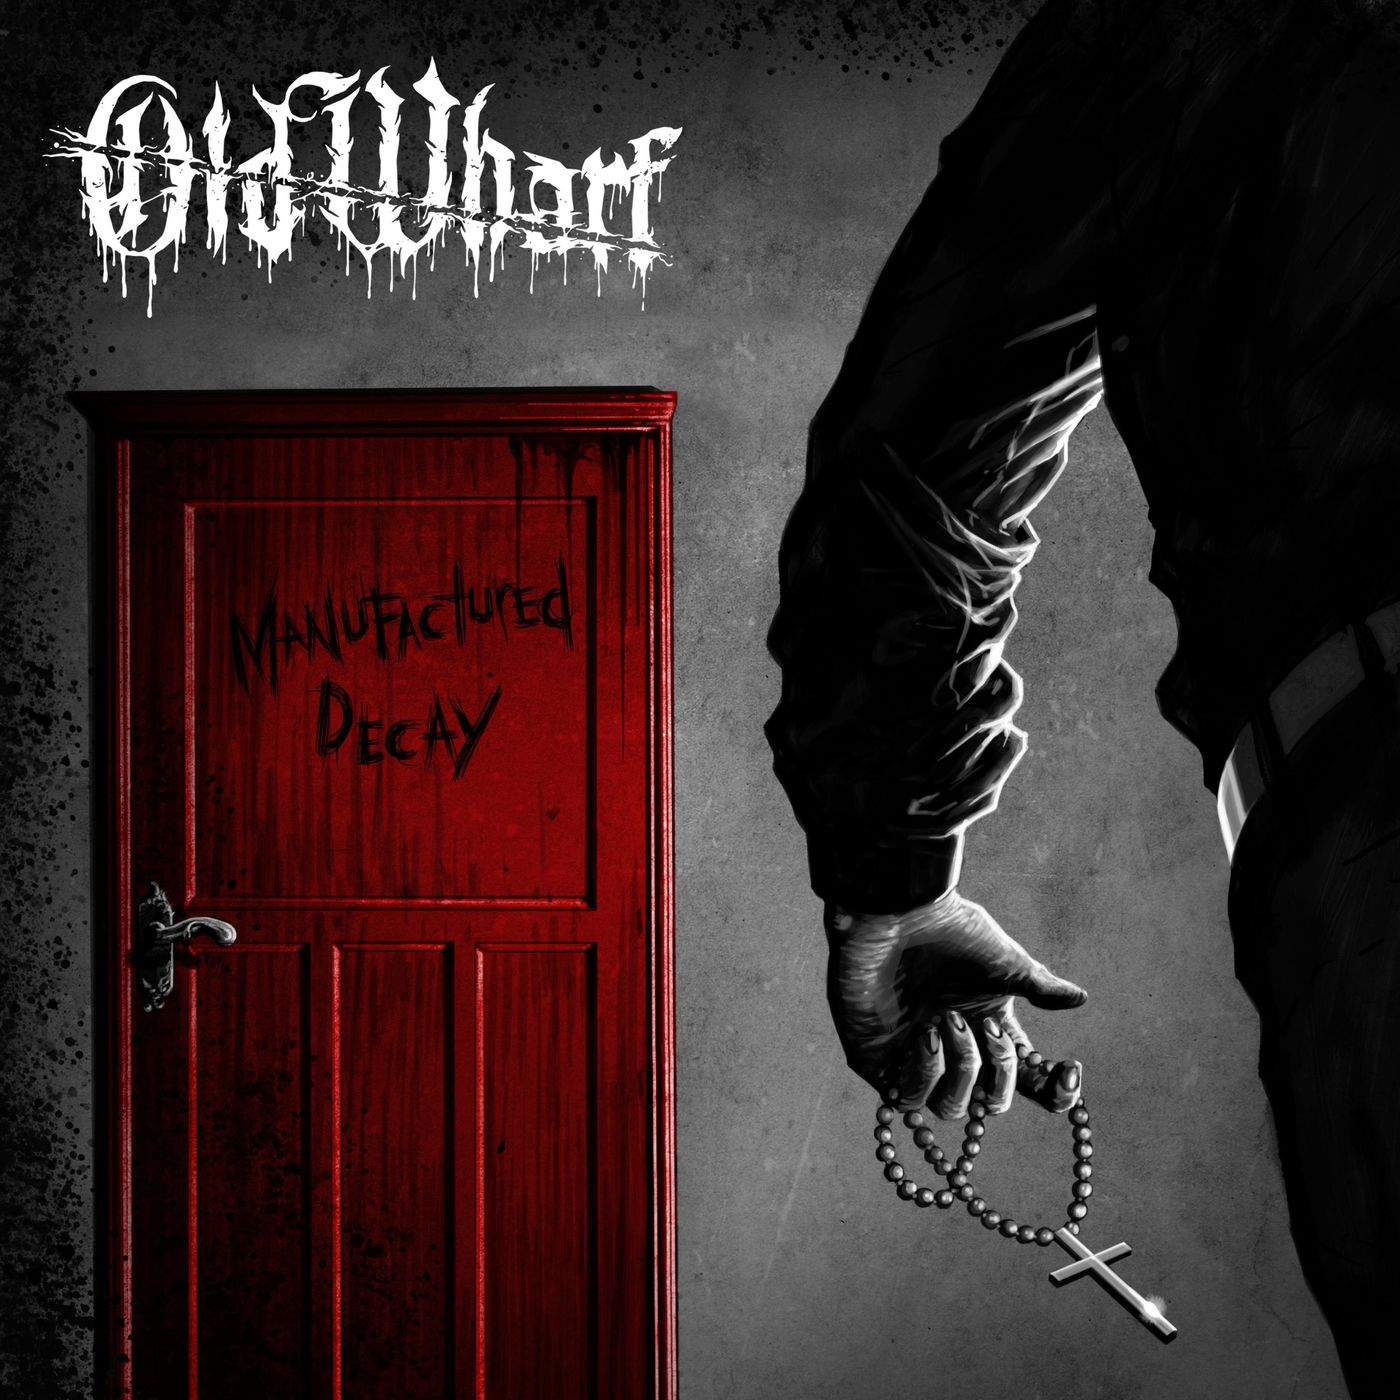 Old Wharf - Manufactured Decay [single] (2021)